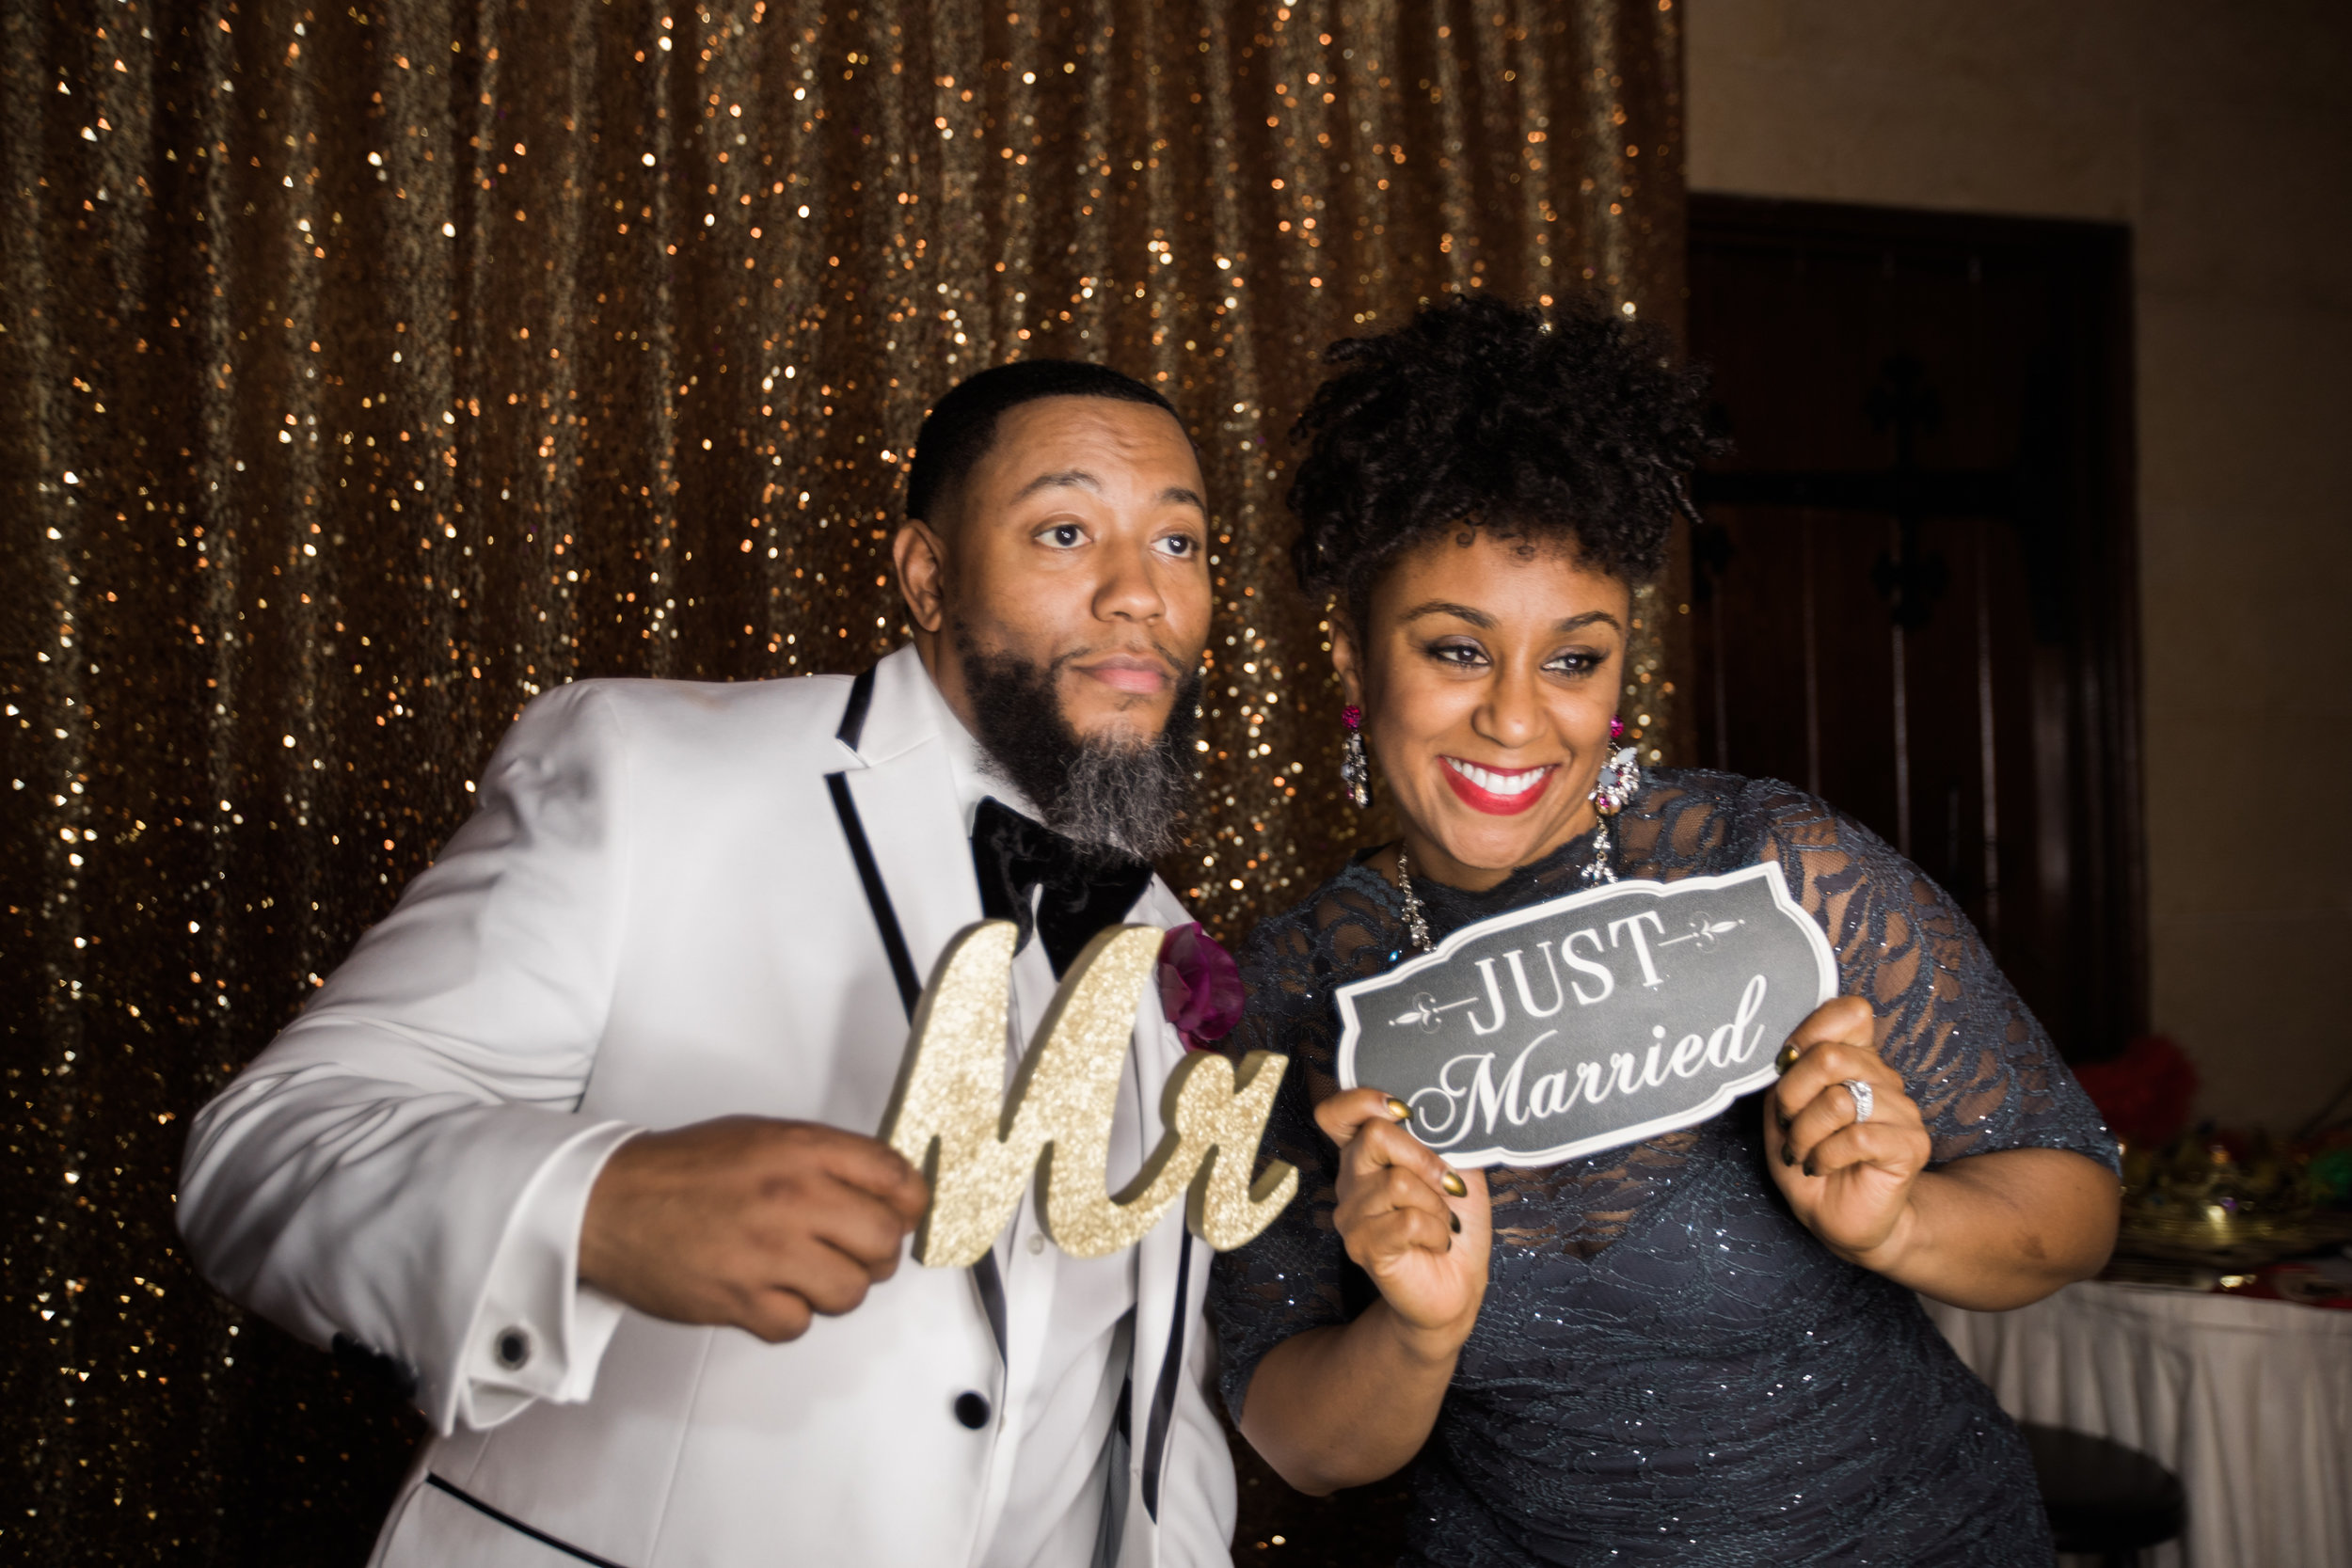 Best Classic Black Bride at The Grand Baltimore Maryland Husband and Wife Wedding Photographers Megapixels Media (91 of 98).jpg